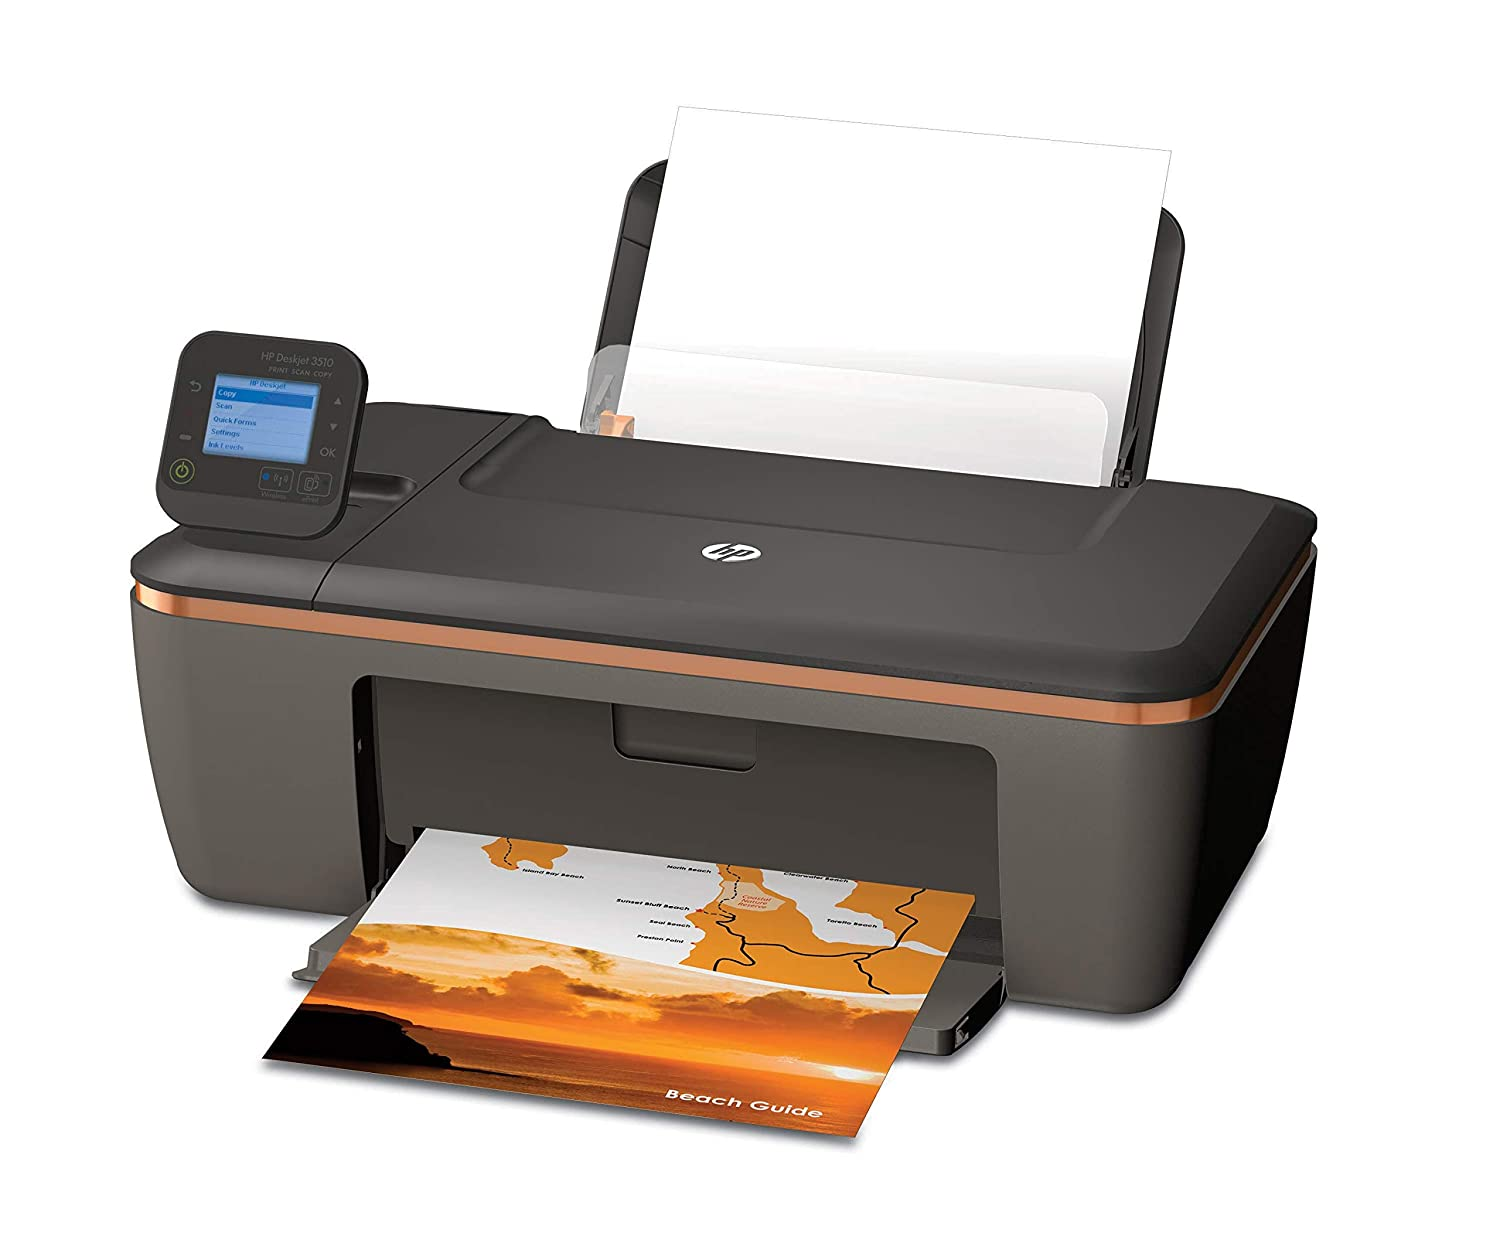 HP 3510 PRINTER DRIVERS FOR WINDOWS MAC